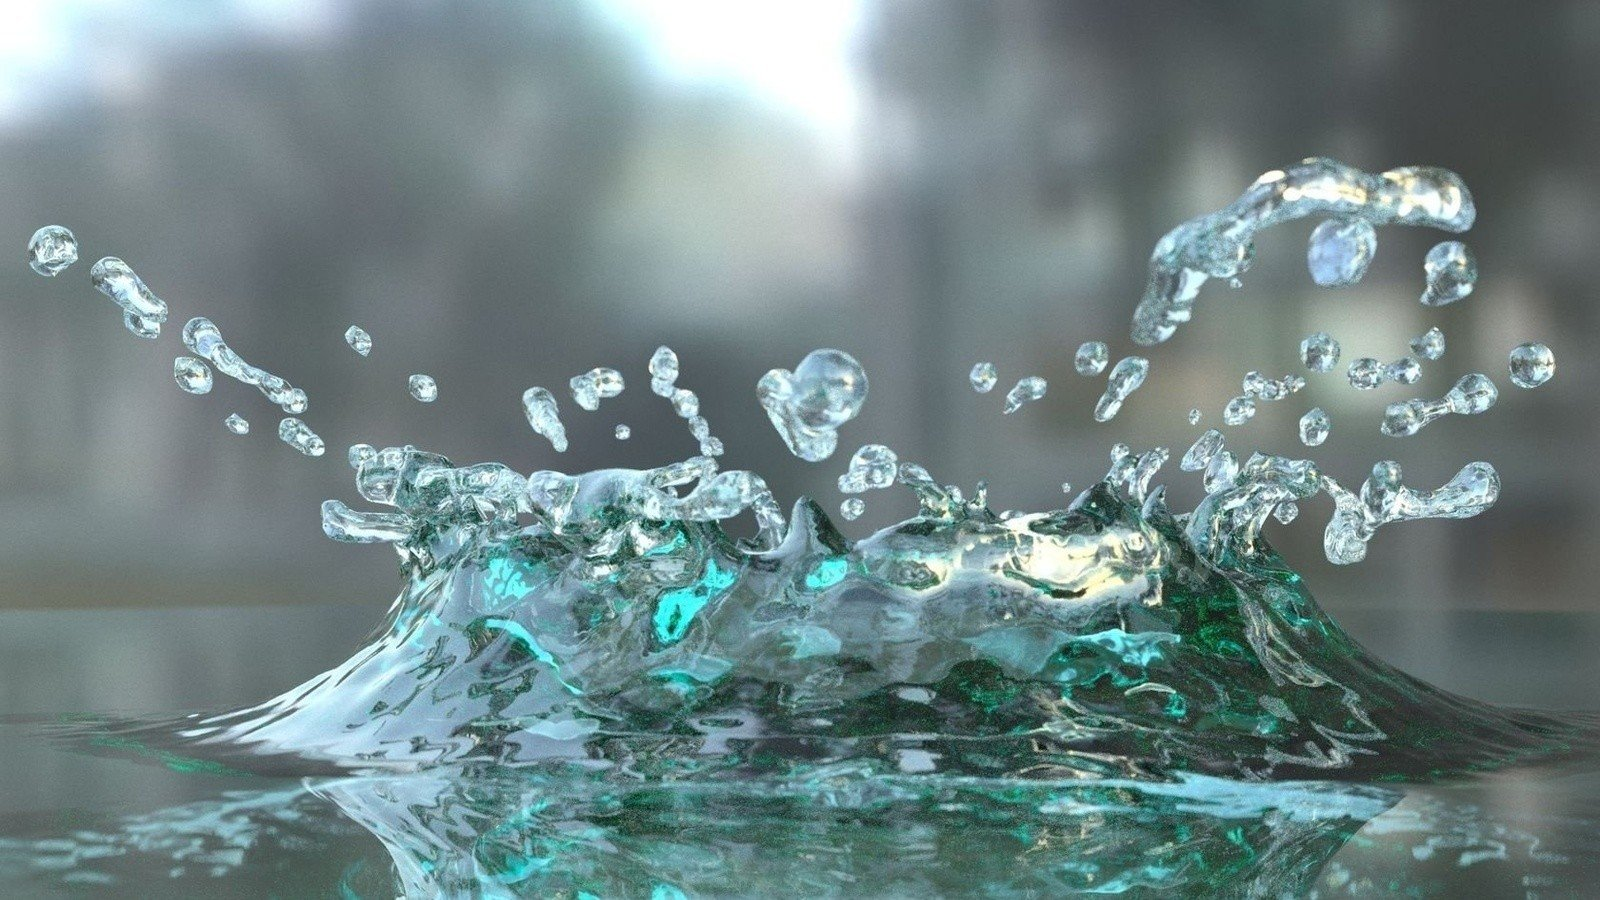 3D Water Wallpaper WallpaperSafari